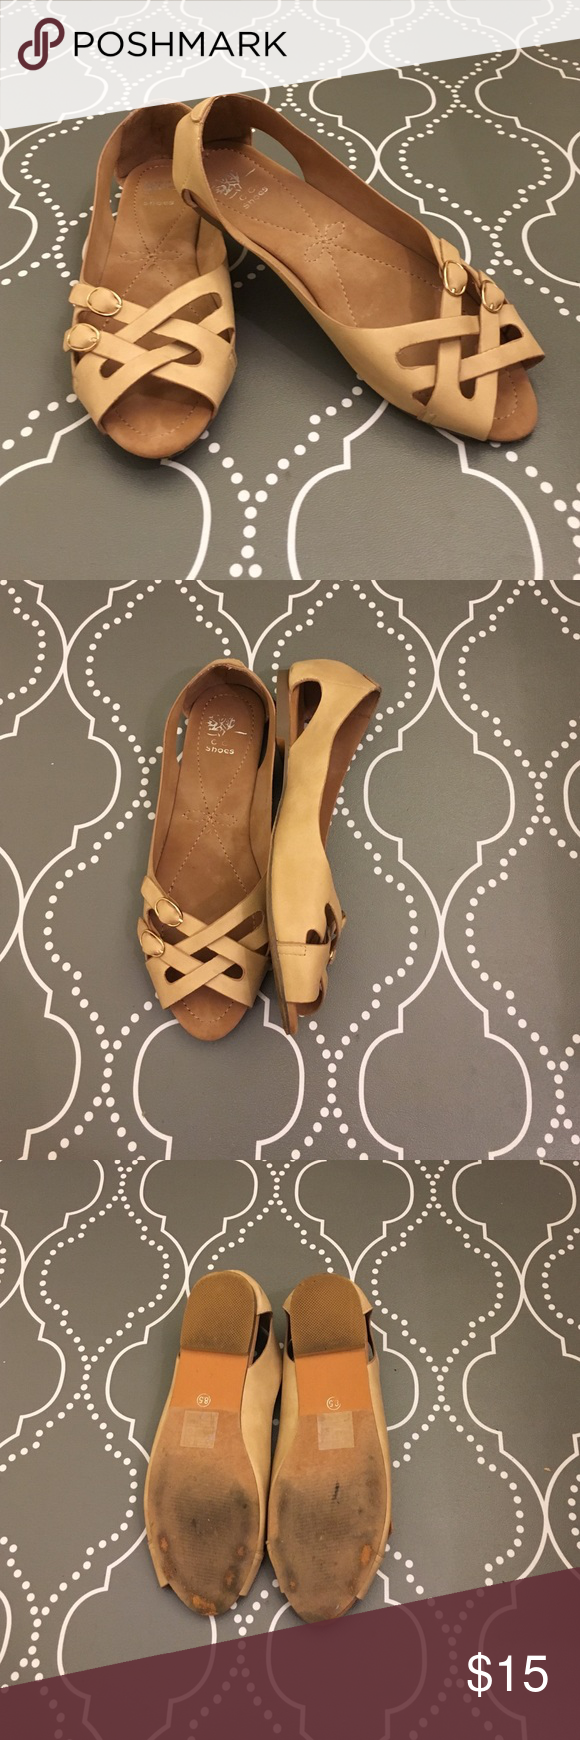 G. C. Shoes - Leather Peep Toe Nude Flats Leather flats perfect for summer. They are a tad too small on me, but as you can see there is some light wear on the bottoms. Make me an offer! Shoes Flats & Loafers